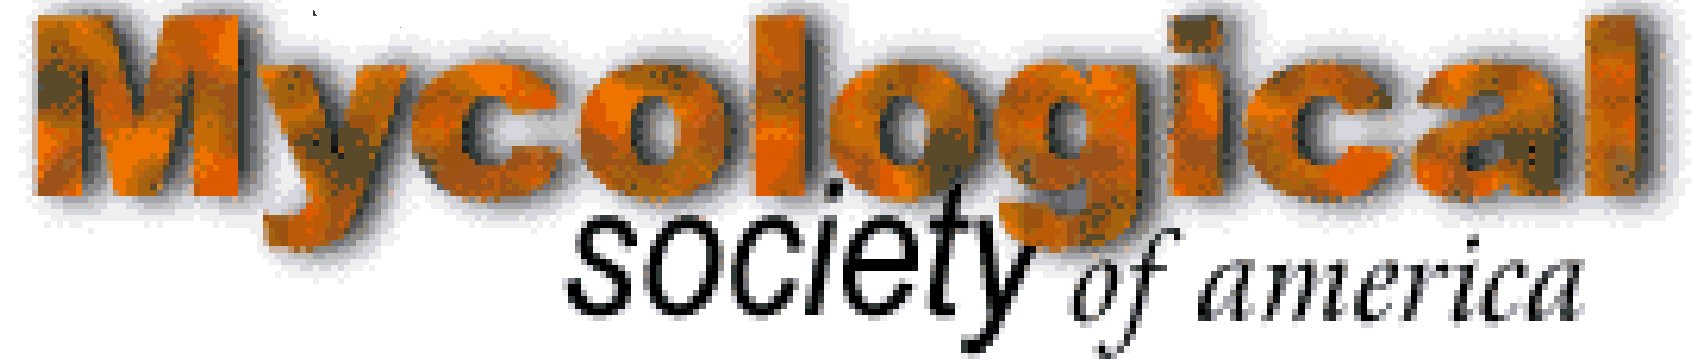 Mycological Society of America Scholarships